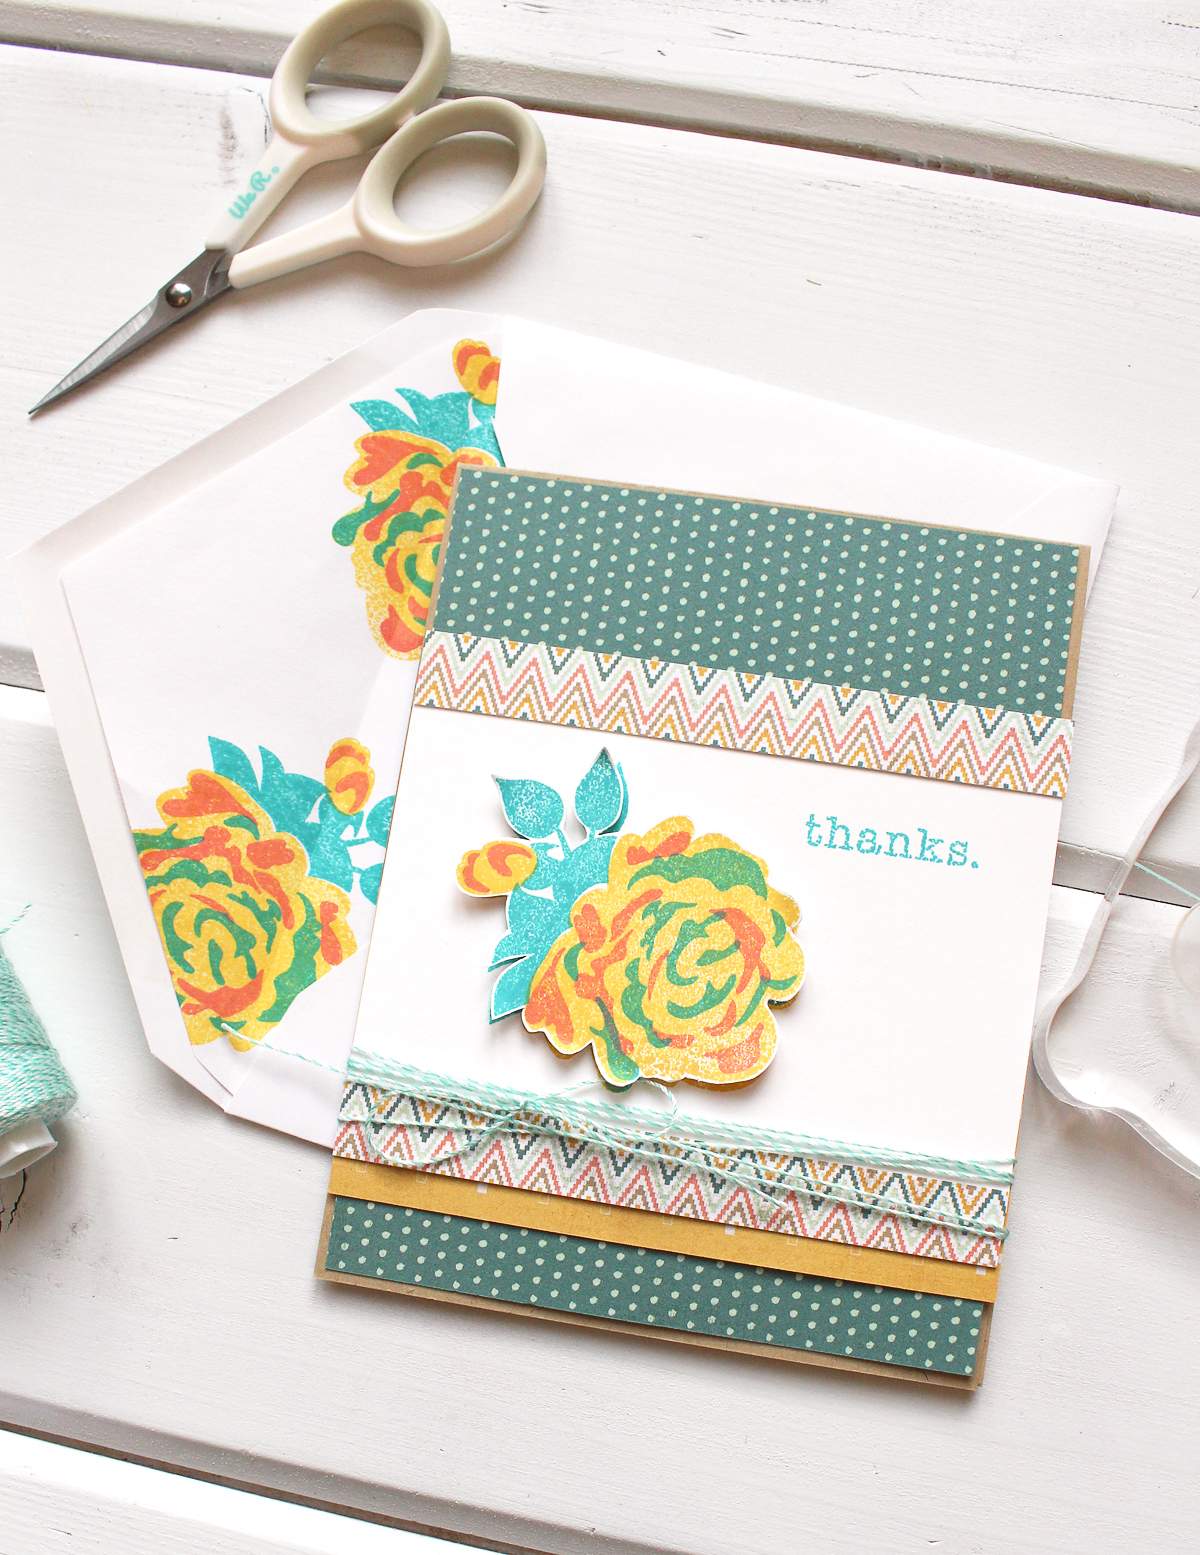 Stamped Card and Envelope by Kimberly Crawford for We R Memory Keepers